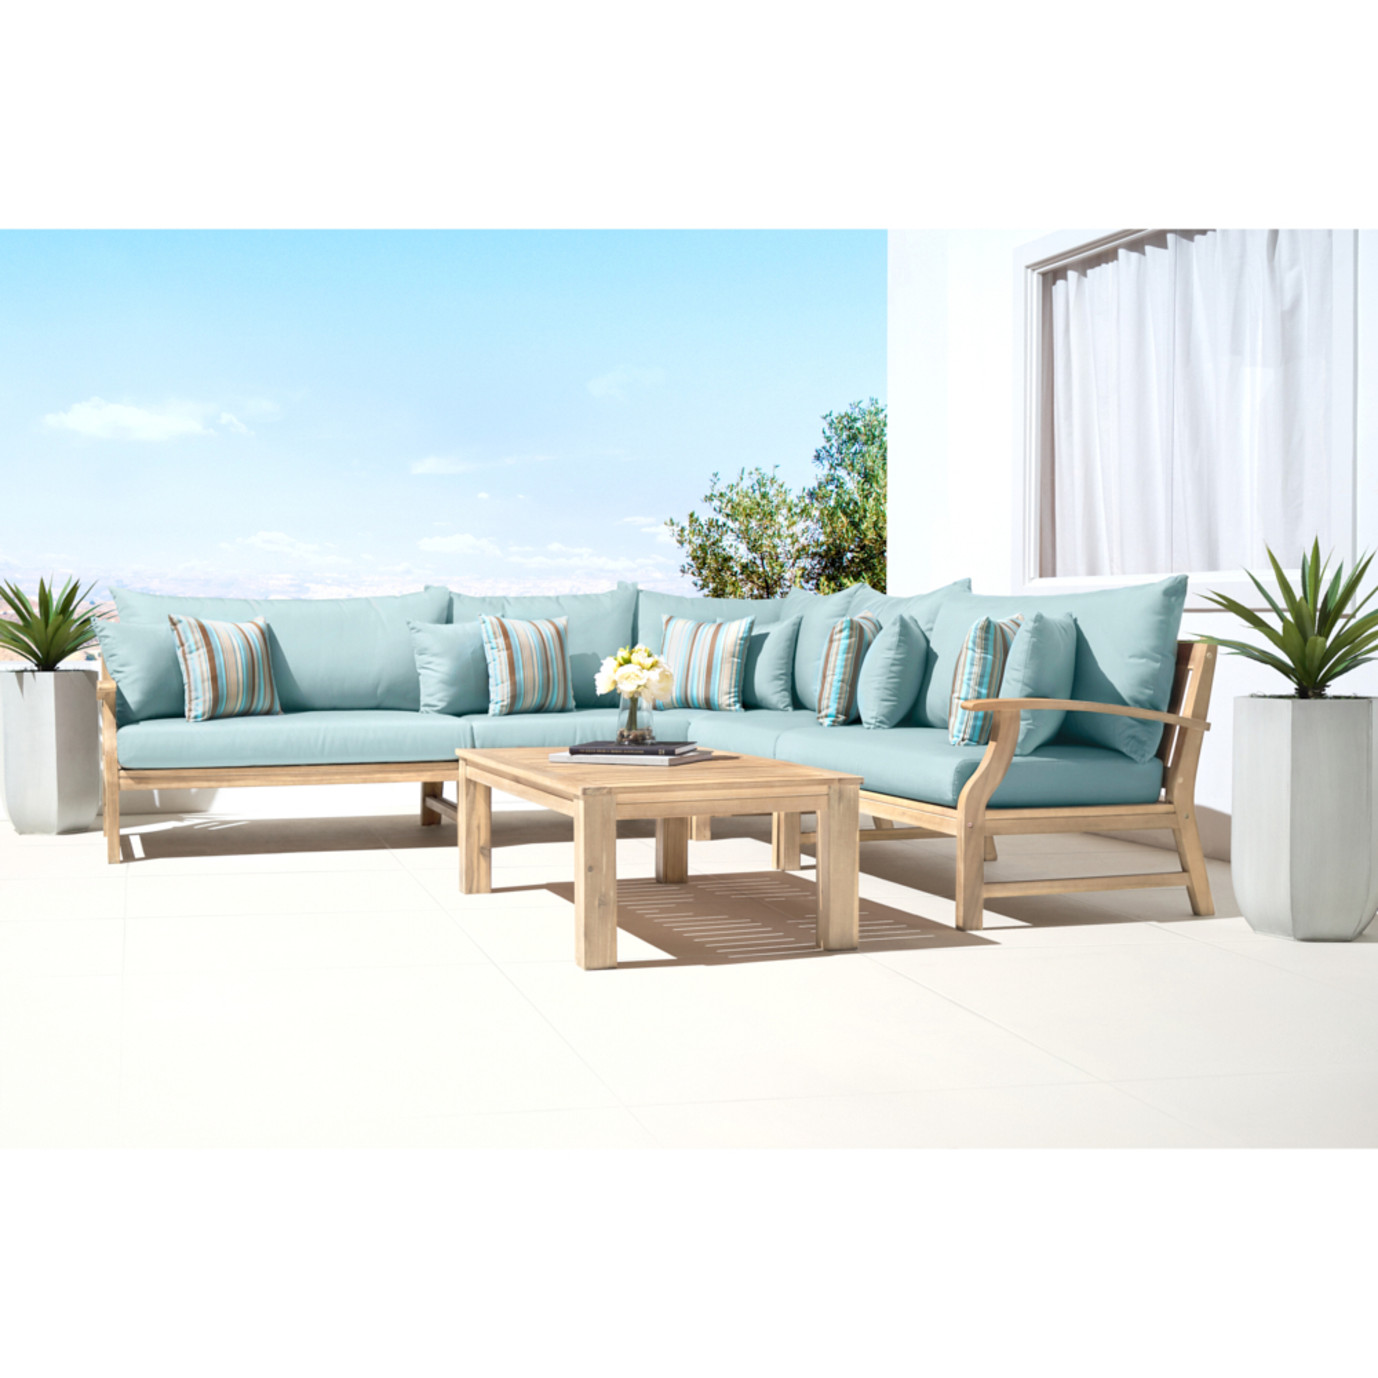 Kooper 6 Piece Sectional - Bliss Blue